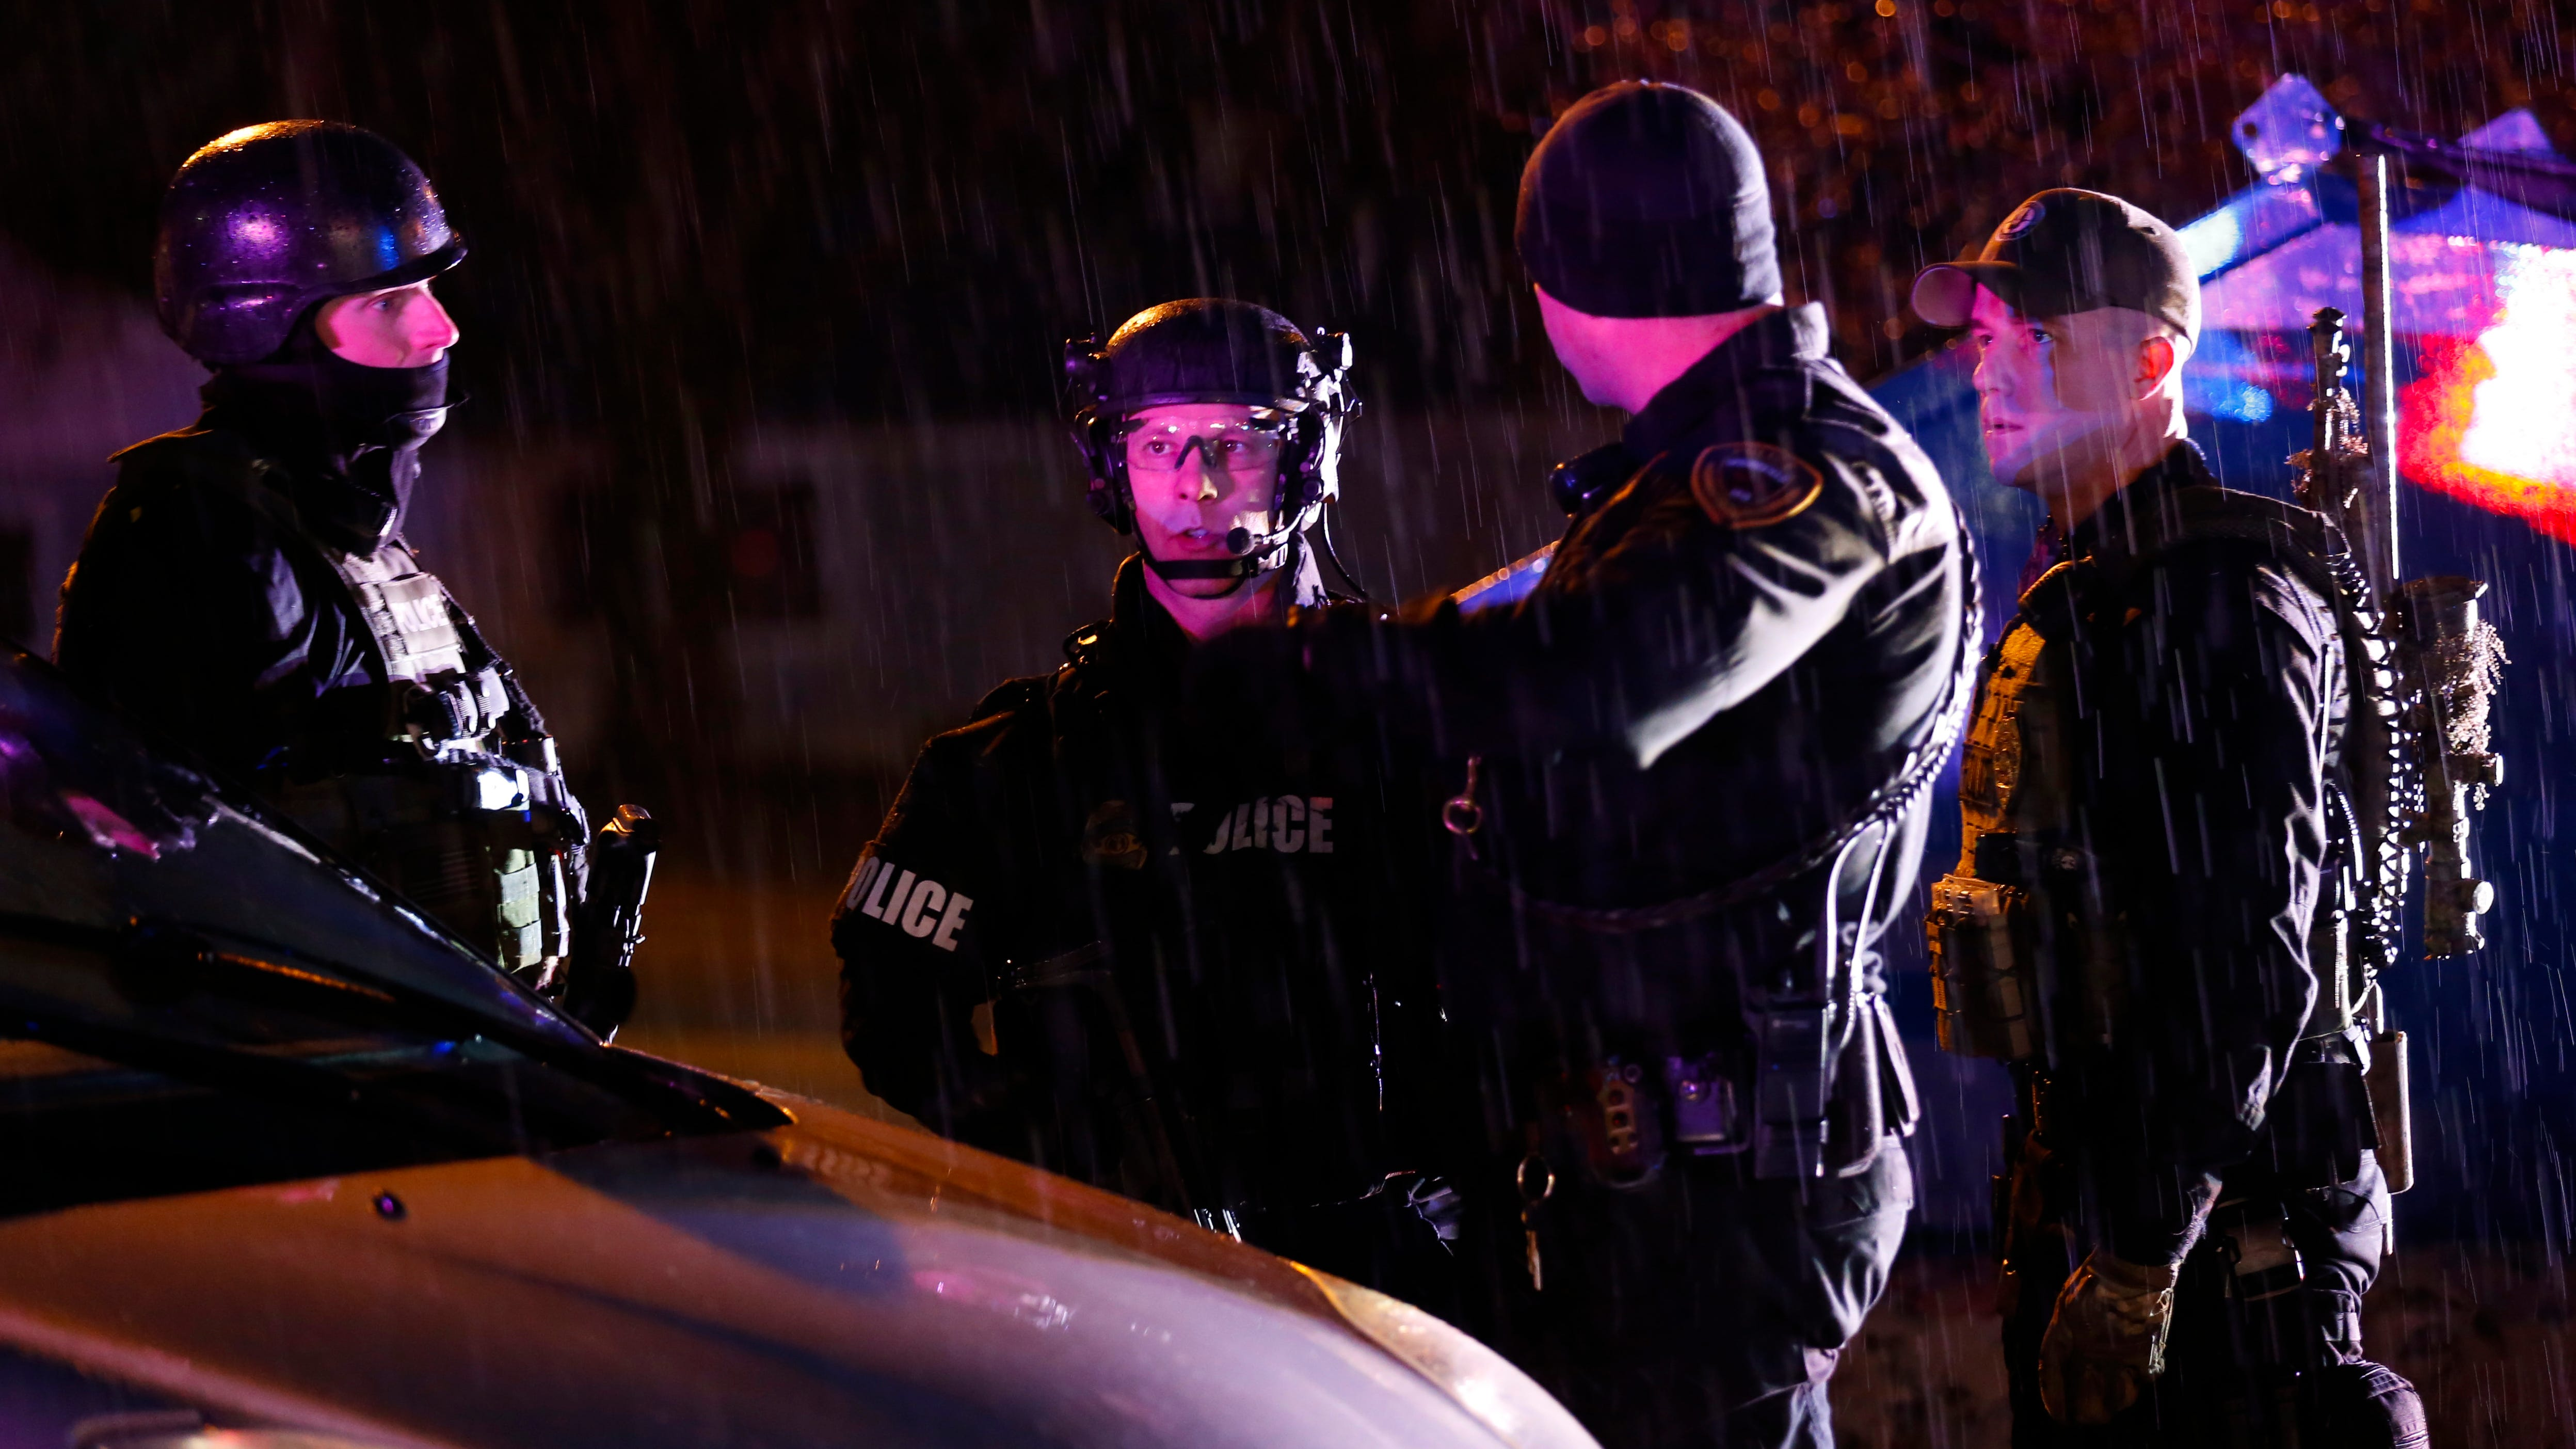 Springfield police responded to a shooting at the Essex Place Apartments on West Battlefield Road on Thursday, Dec. 13, 2018.